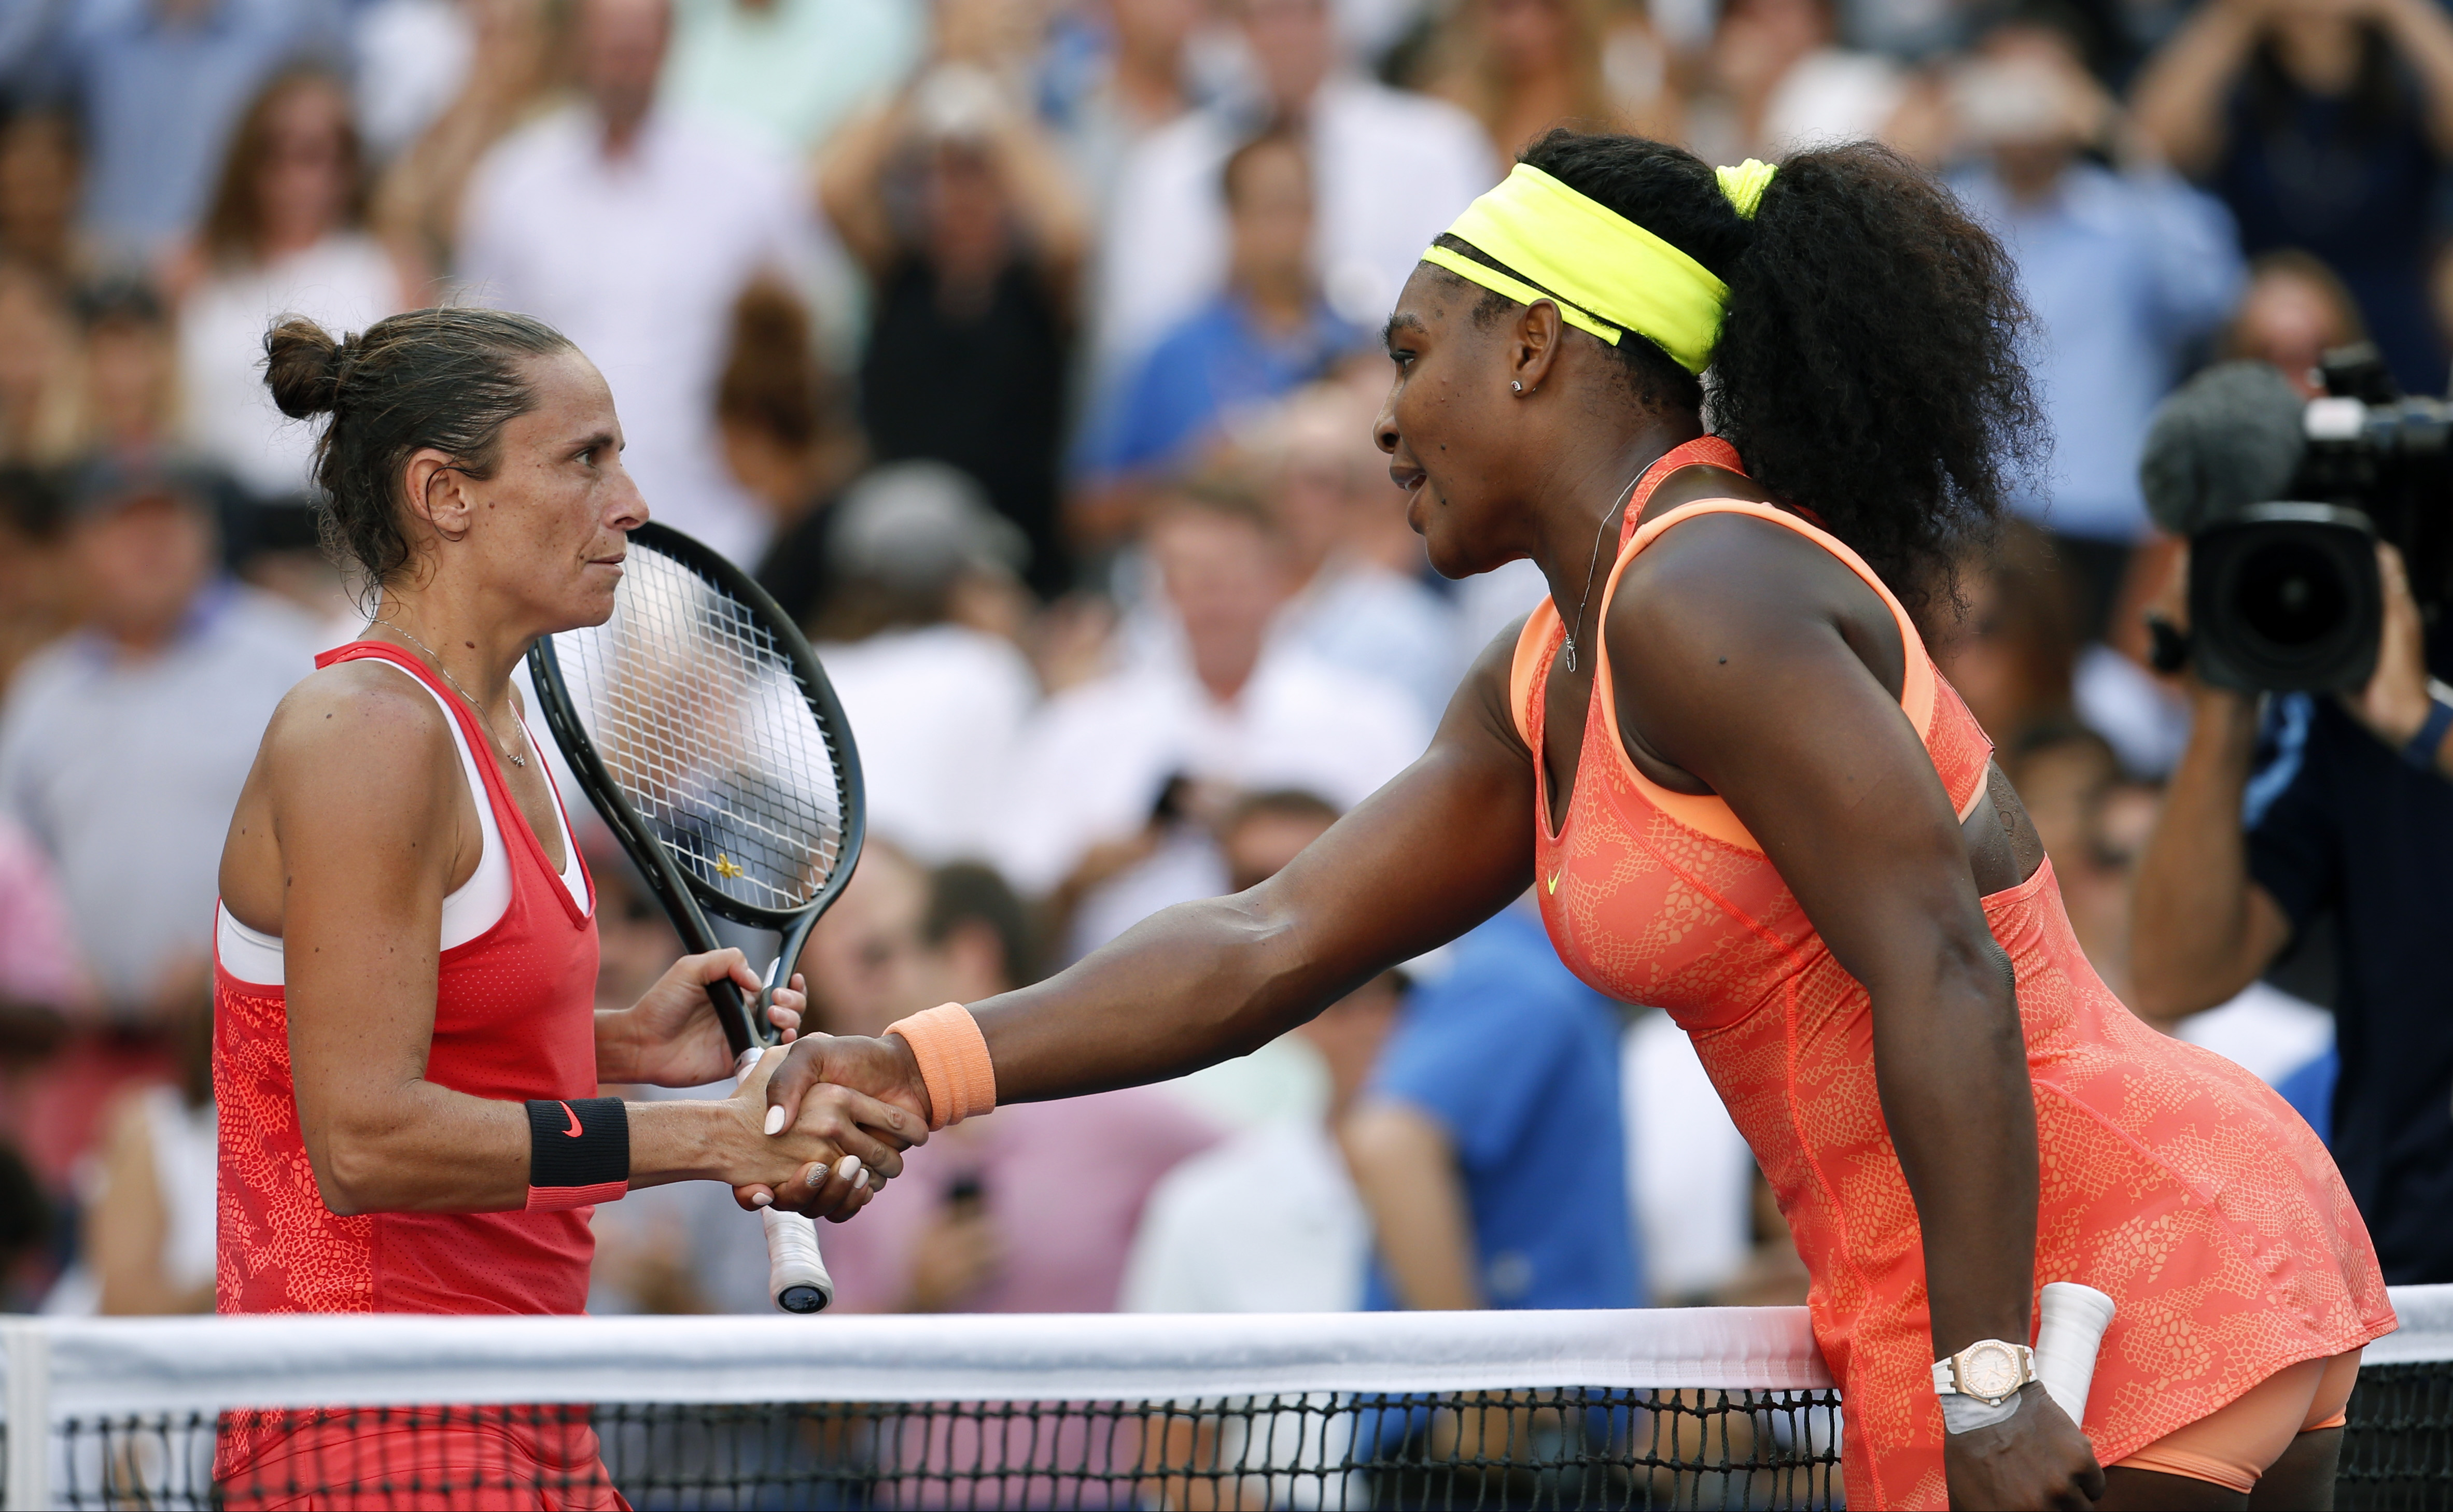 Roberta Vinci, of Italy, left, greets Serena Williams after winning their semifinal match at the U.S. Open tennis tournament, Friday, Sept. 11, 2015, in New York. (AP Photo/Julio Cortez)